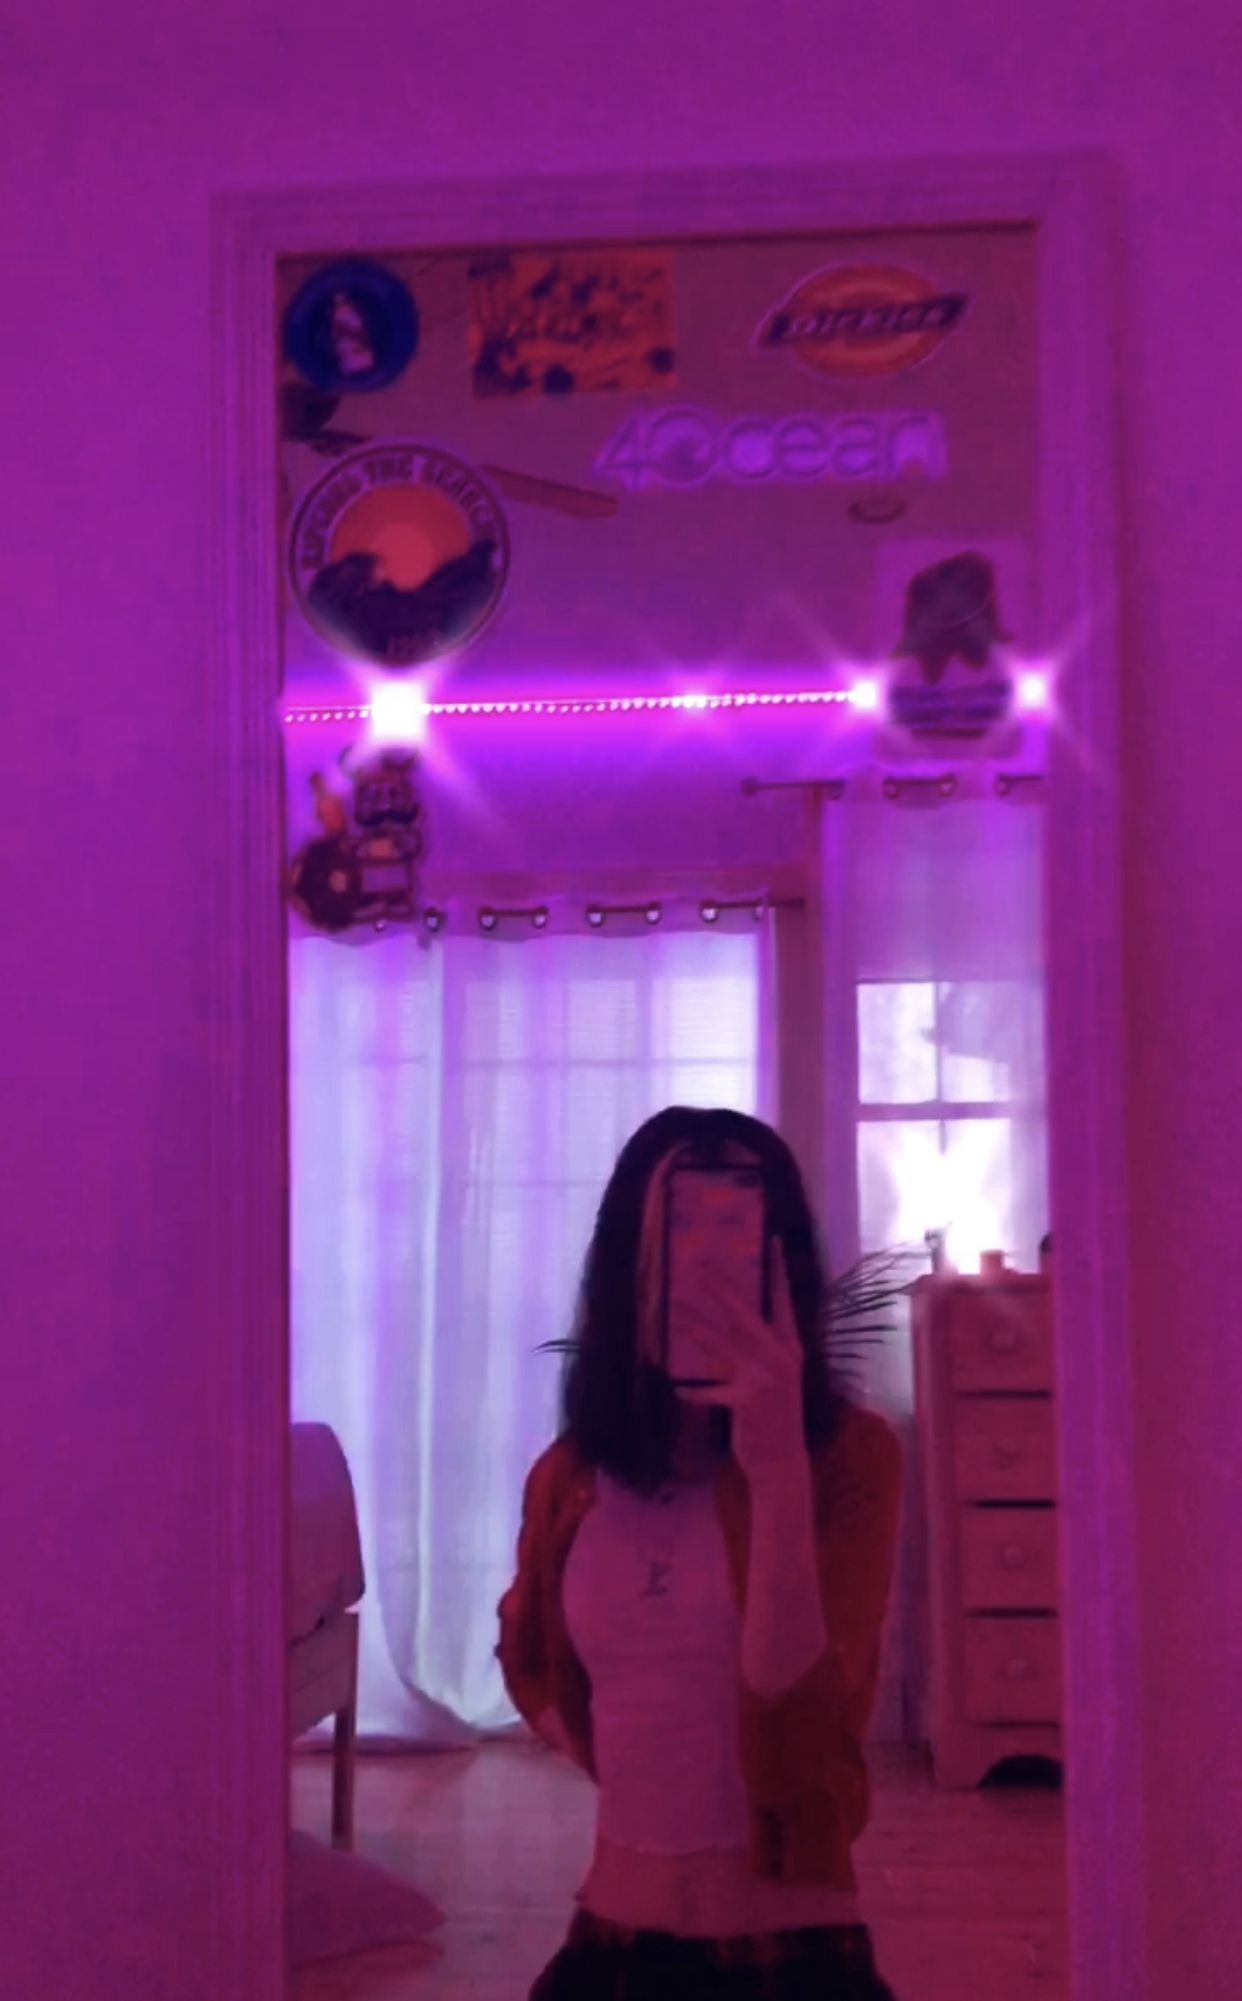 Led Lights Aesthetic Girl